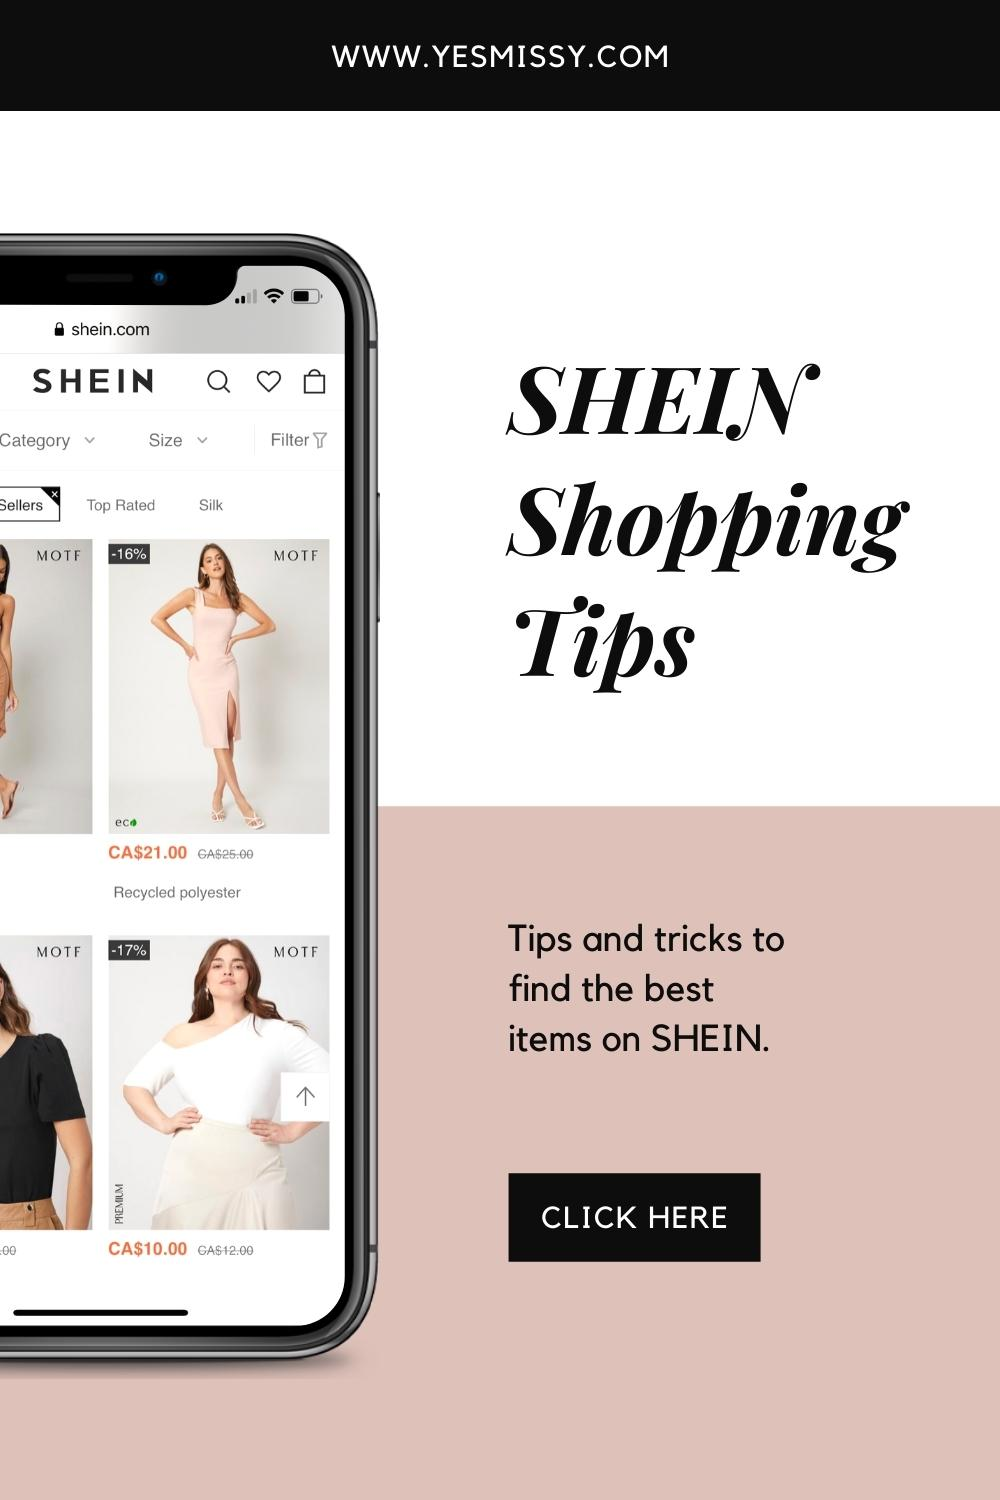 Tips for shopping at SHEIN.com to find the right size, quality pieces and SHEIN coupon codes!